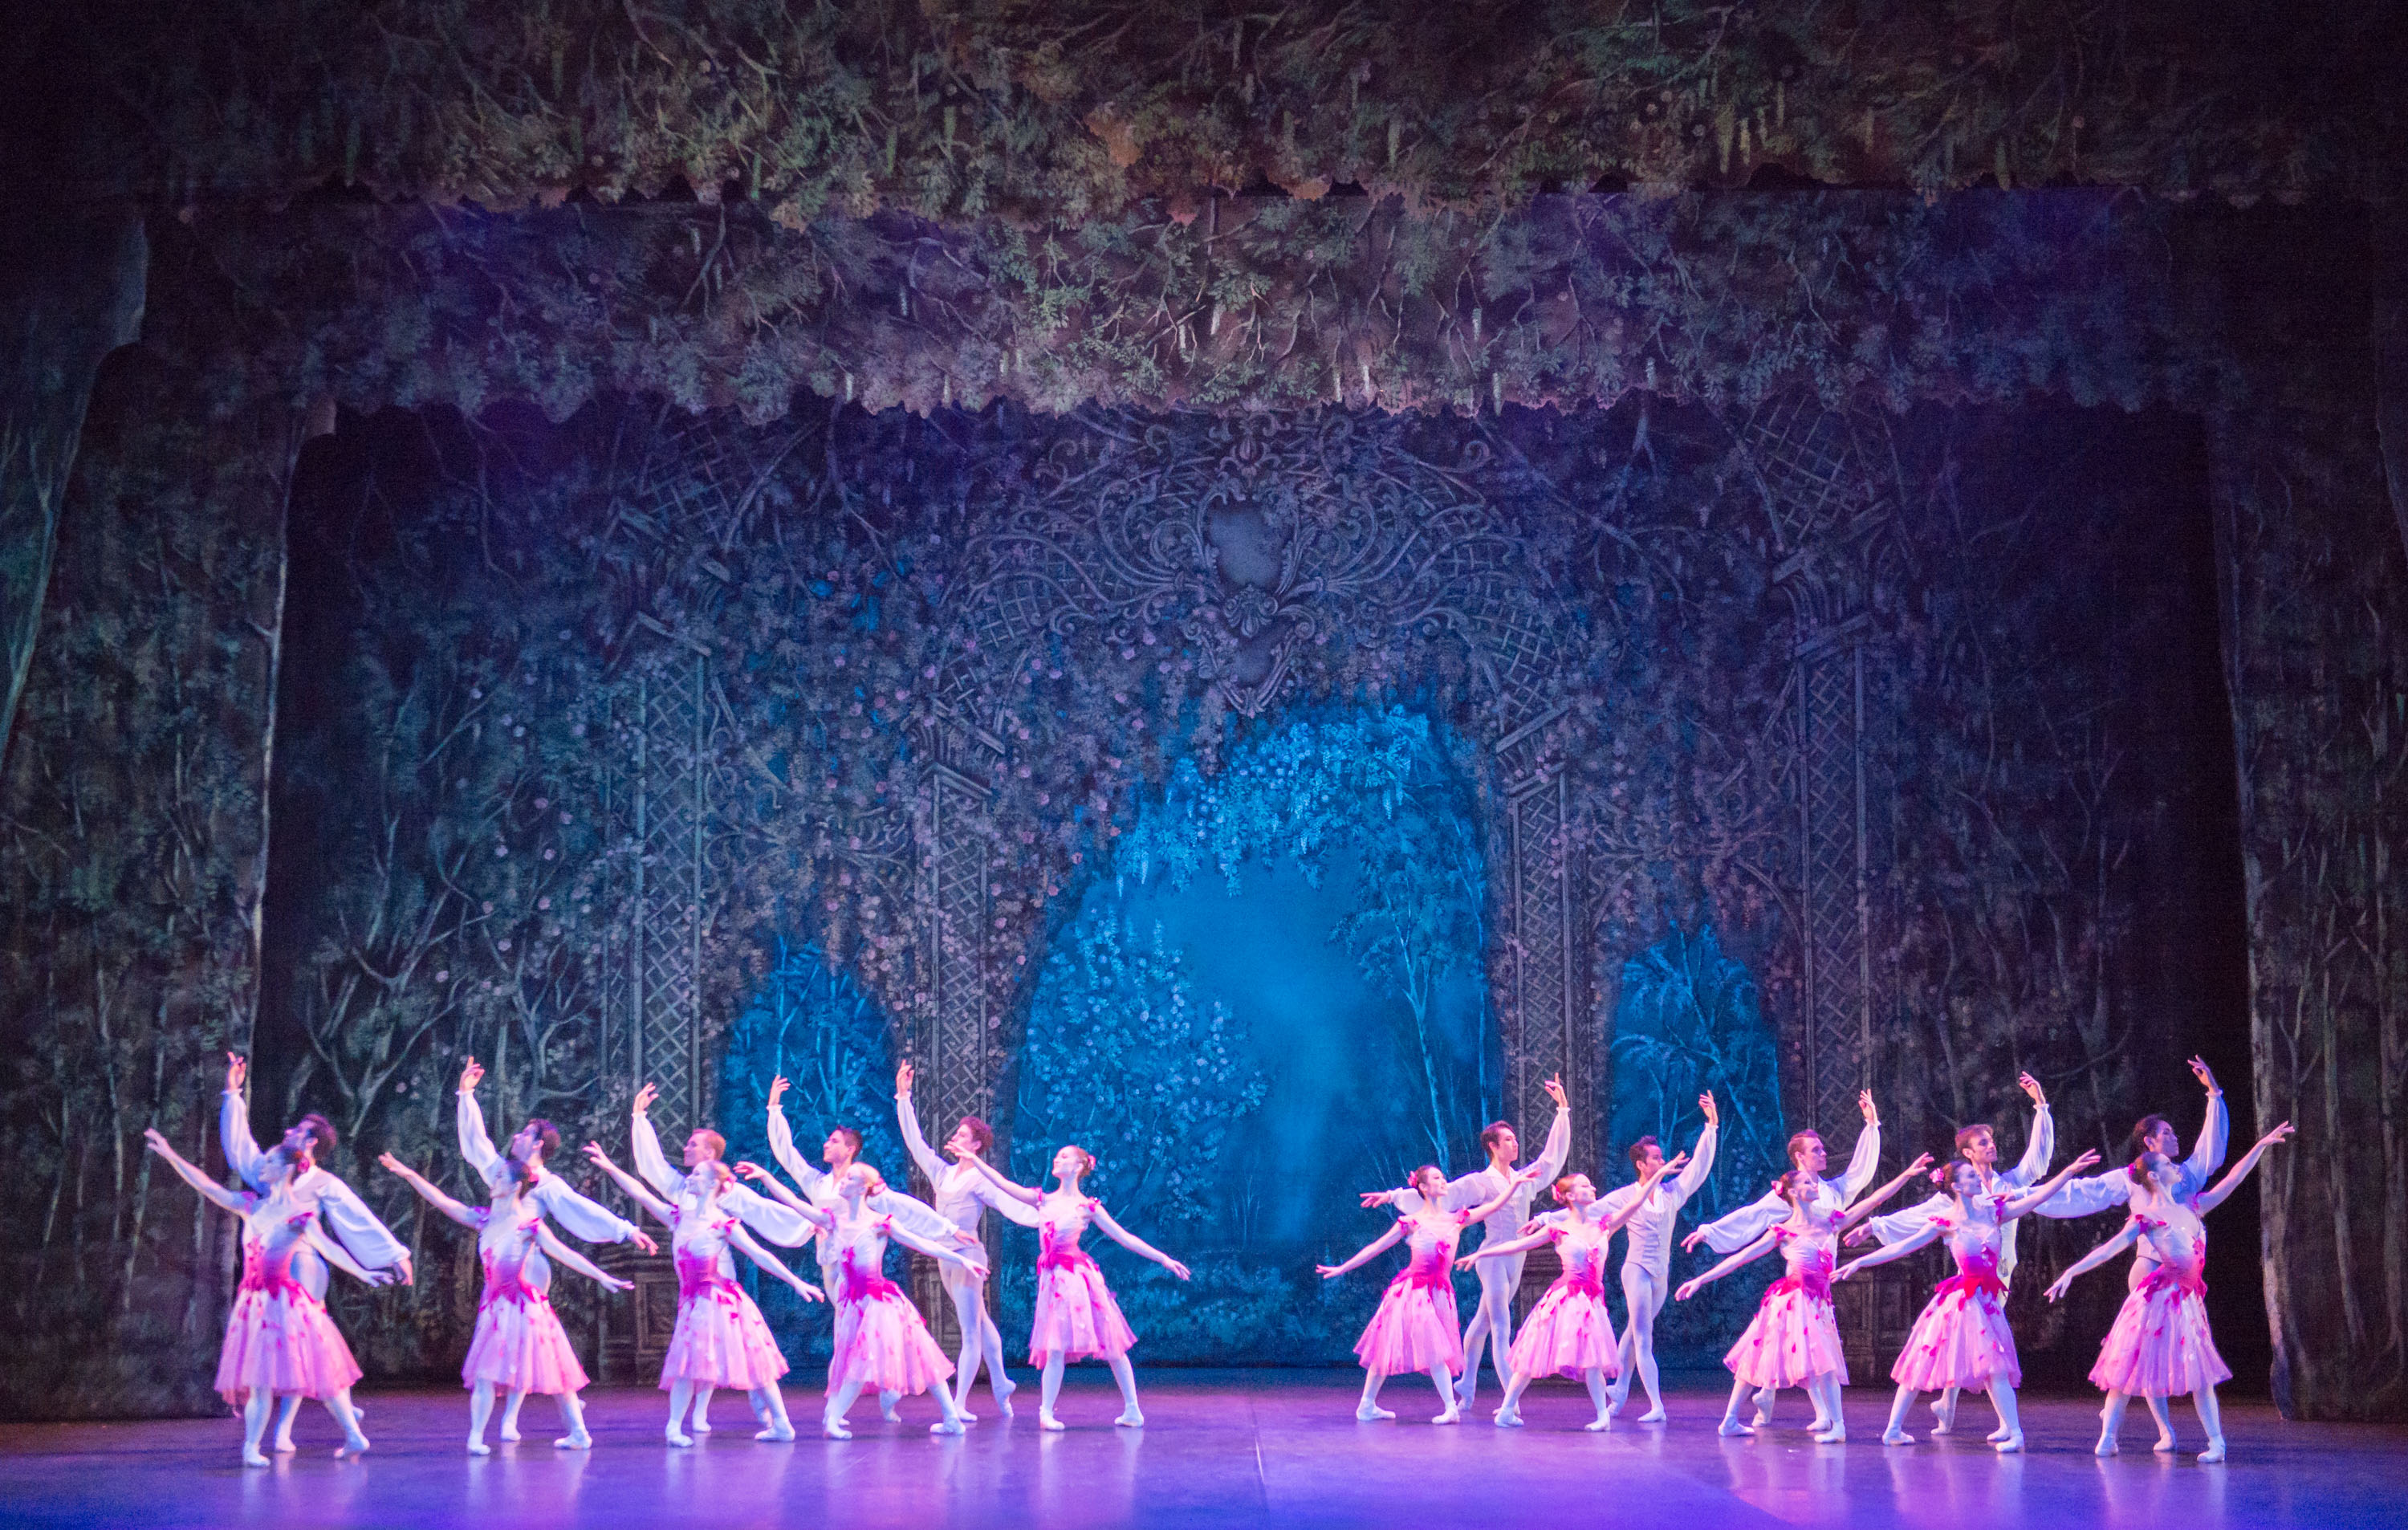 Nutcracker. English National Ballet. Waltz of the Flowers. Photography by Ash.